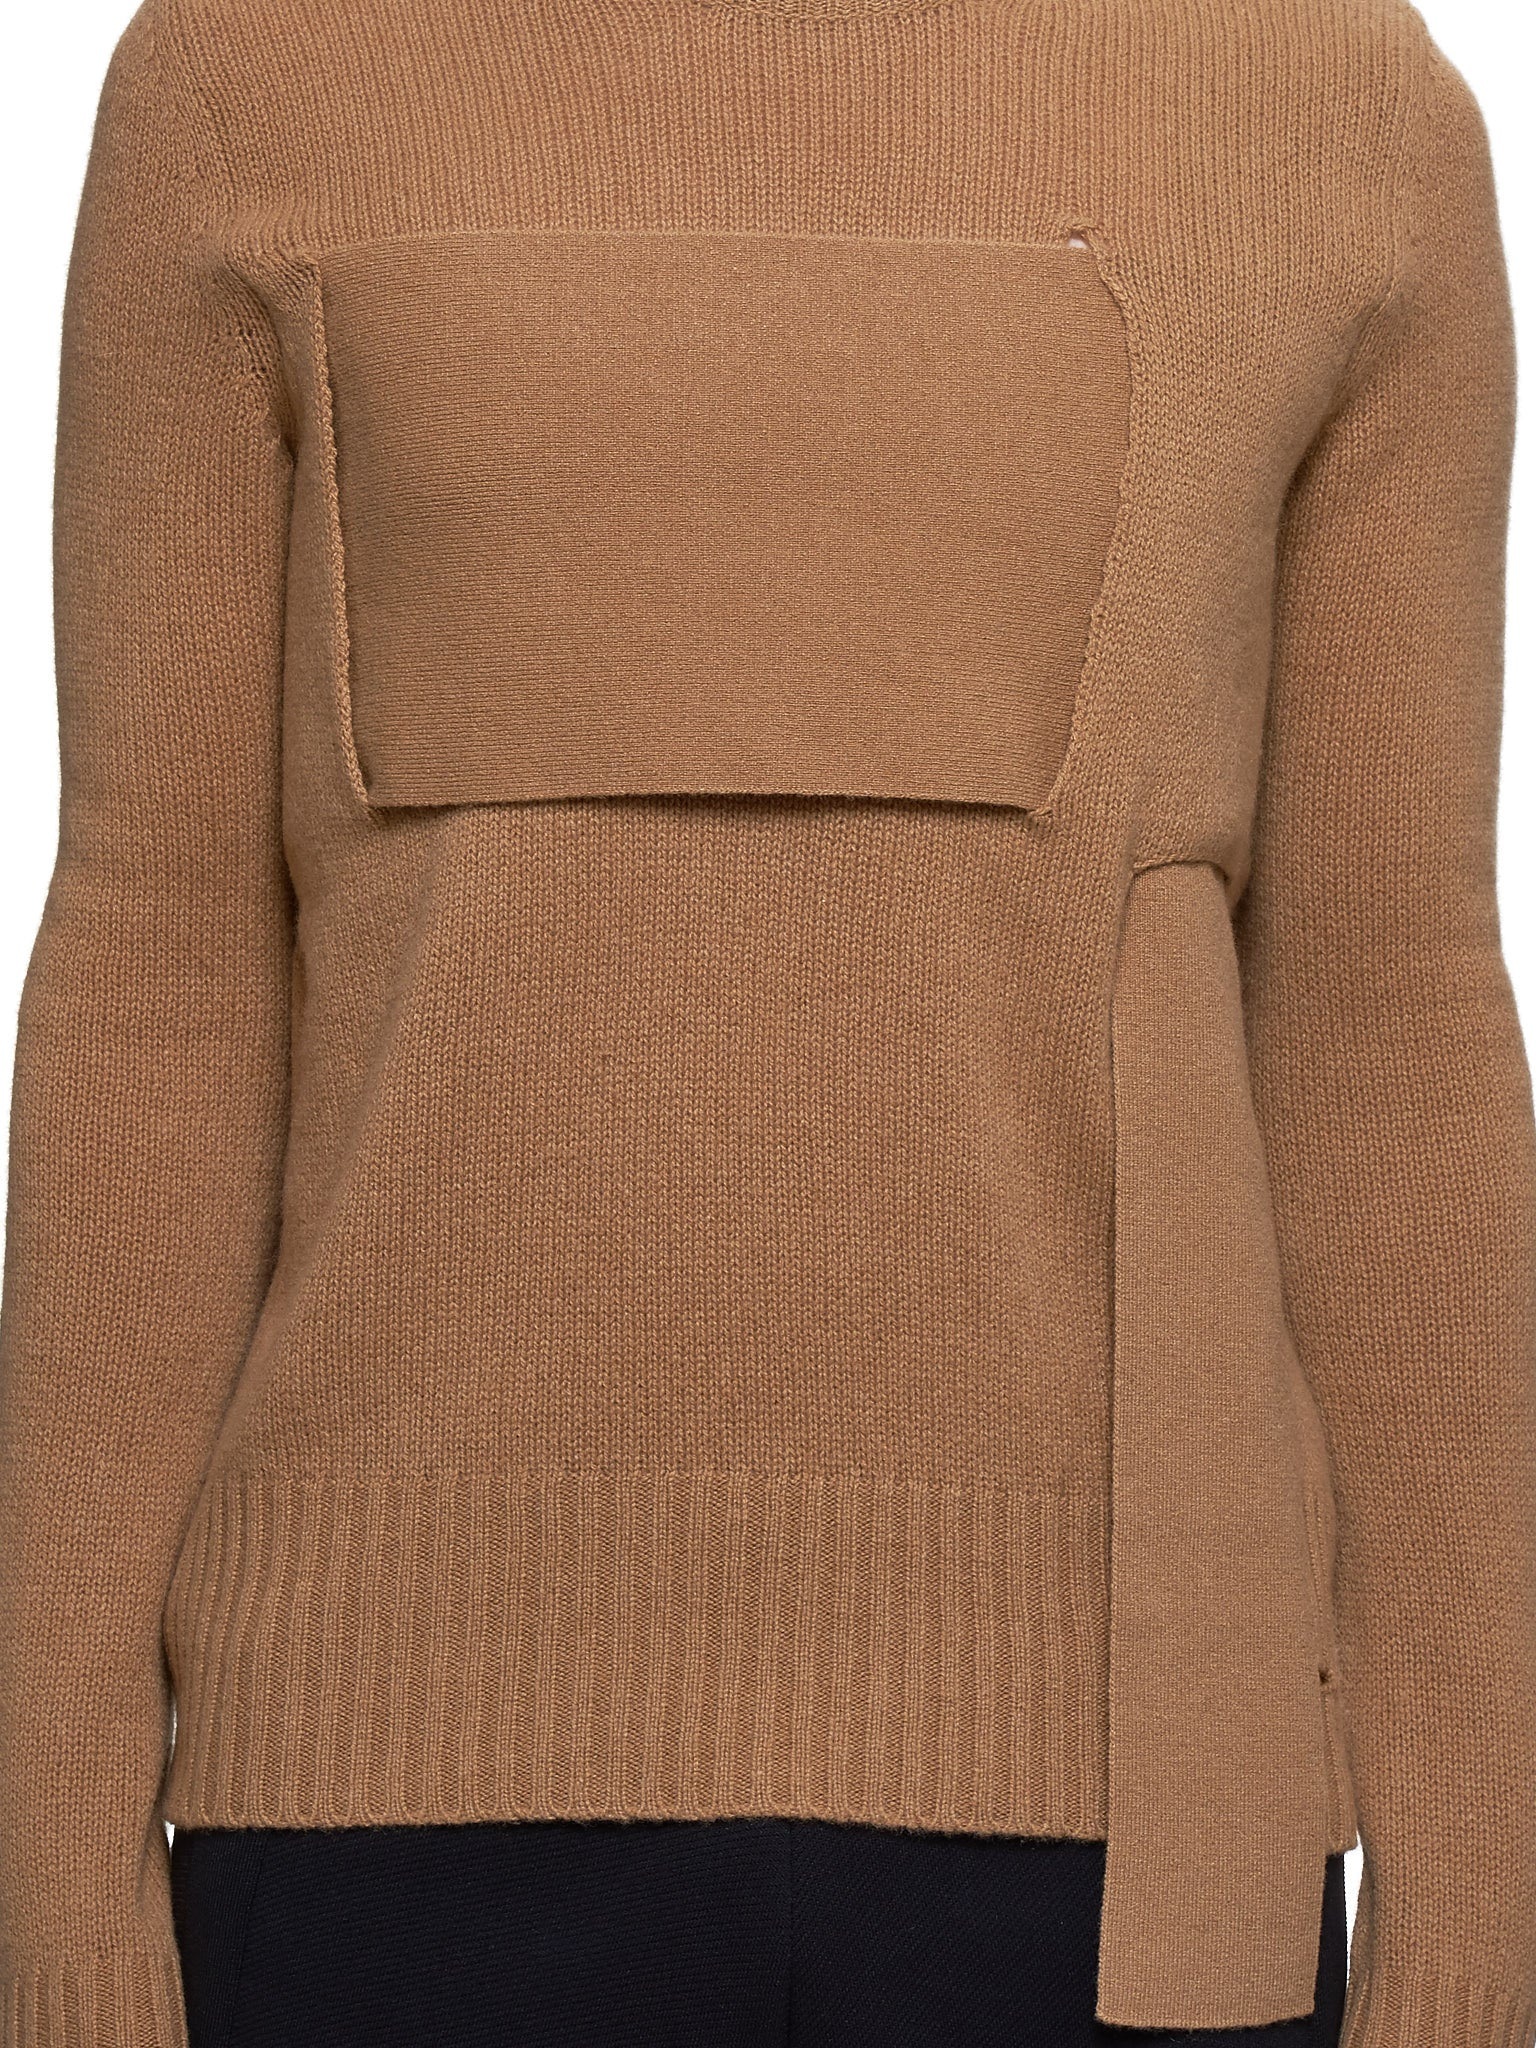 Bottega Veneta Sweater - Hlorenzo Detail 3